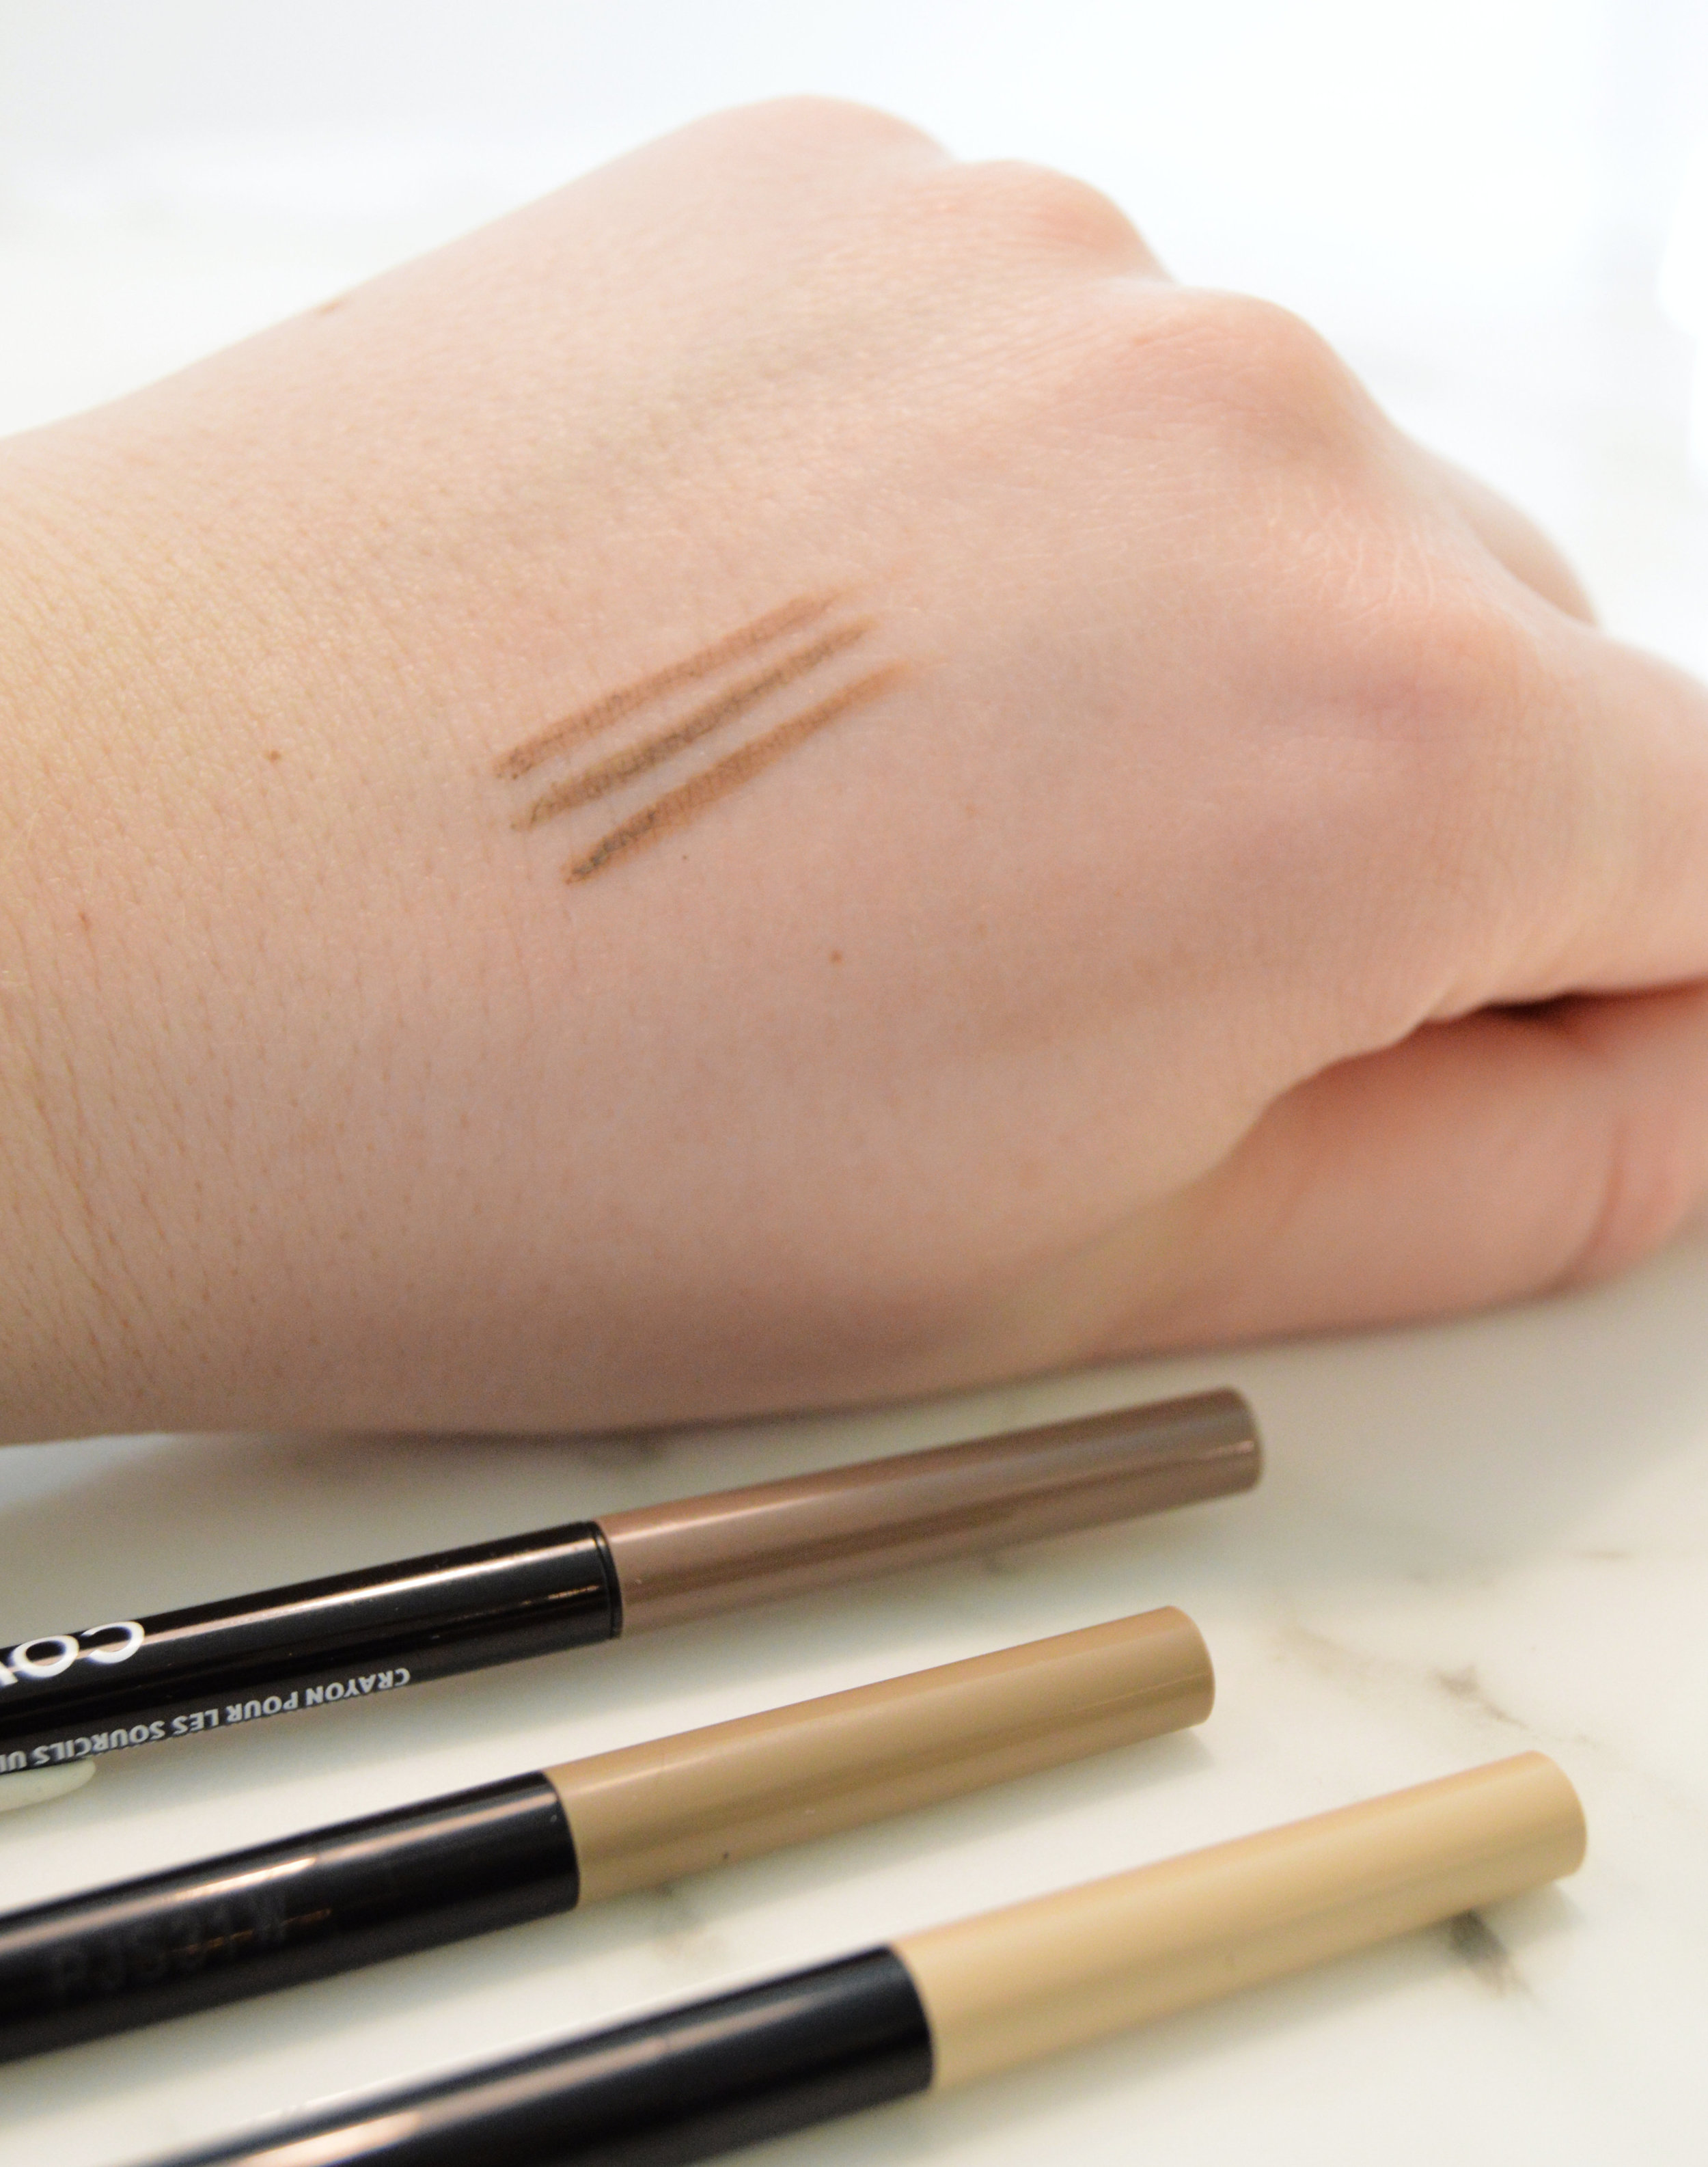 Top to bottom: Cover Girl Blonde, Maybelline Blonde, and Maybelline Light Blonde eyebrow pencils